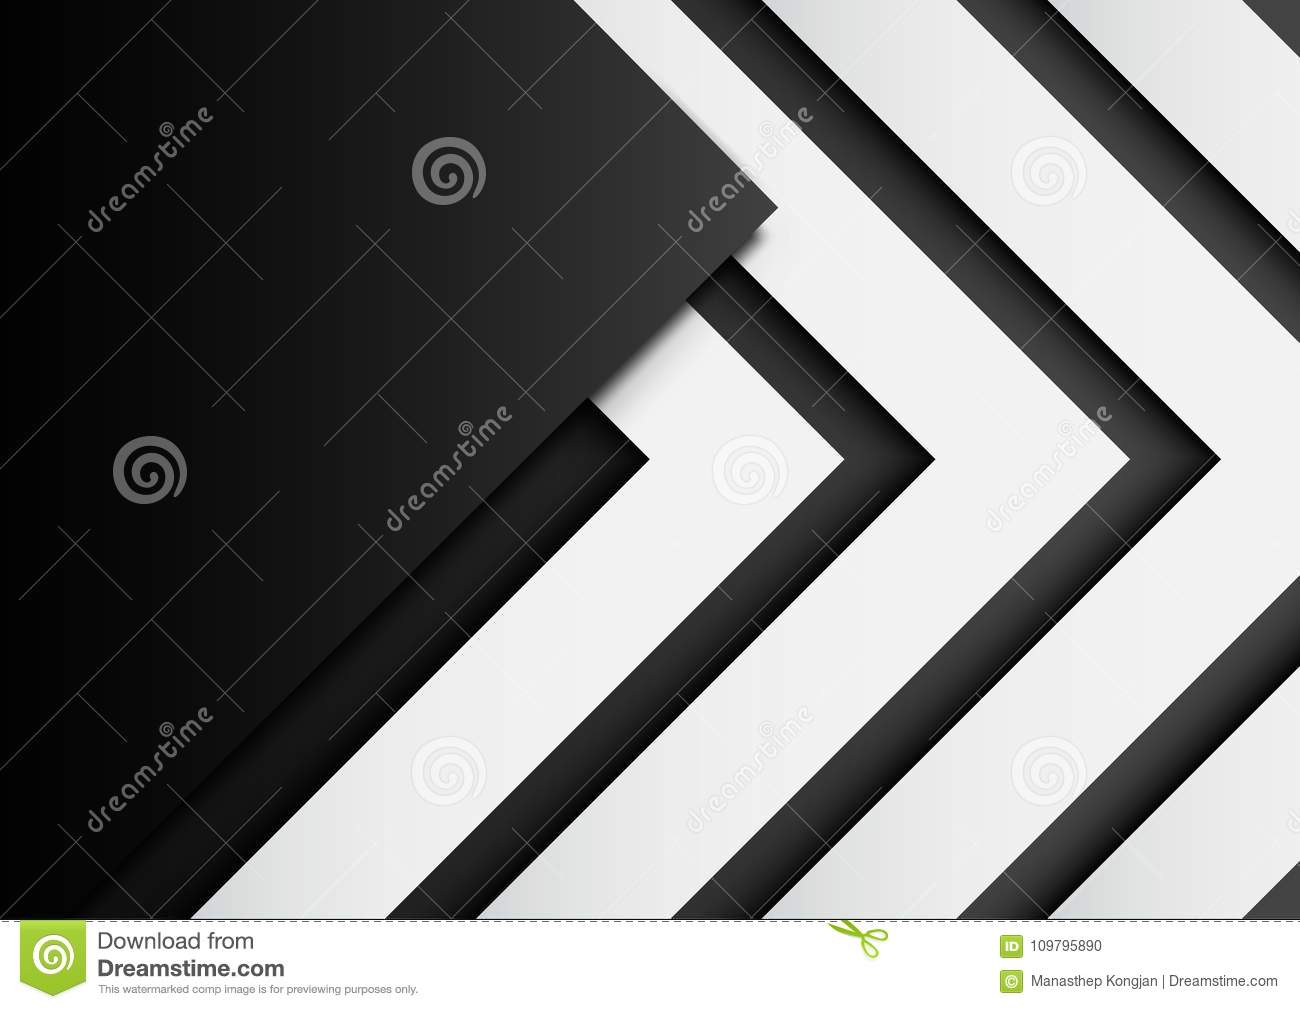 03.Black and white arrows on black background with paper art sty